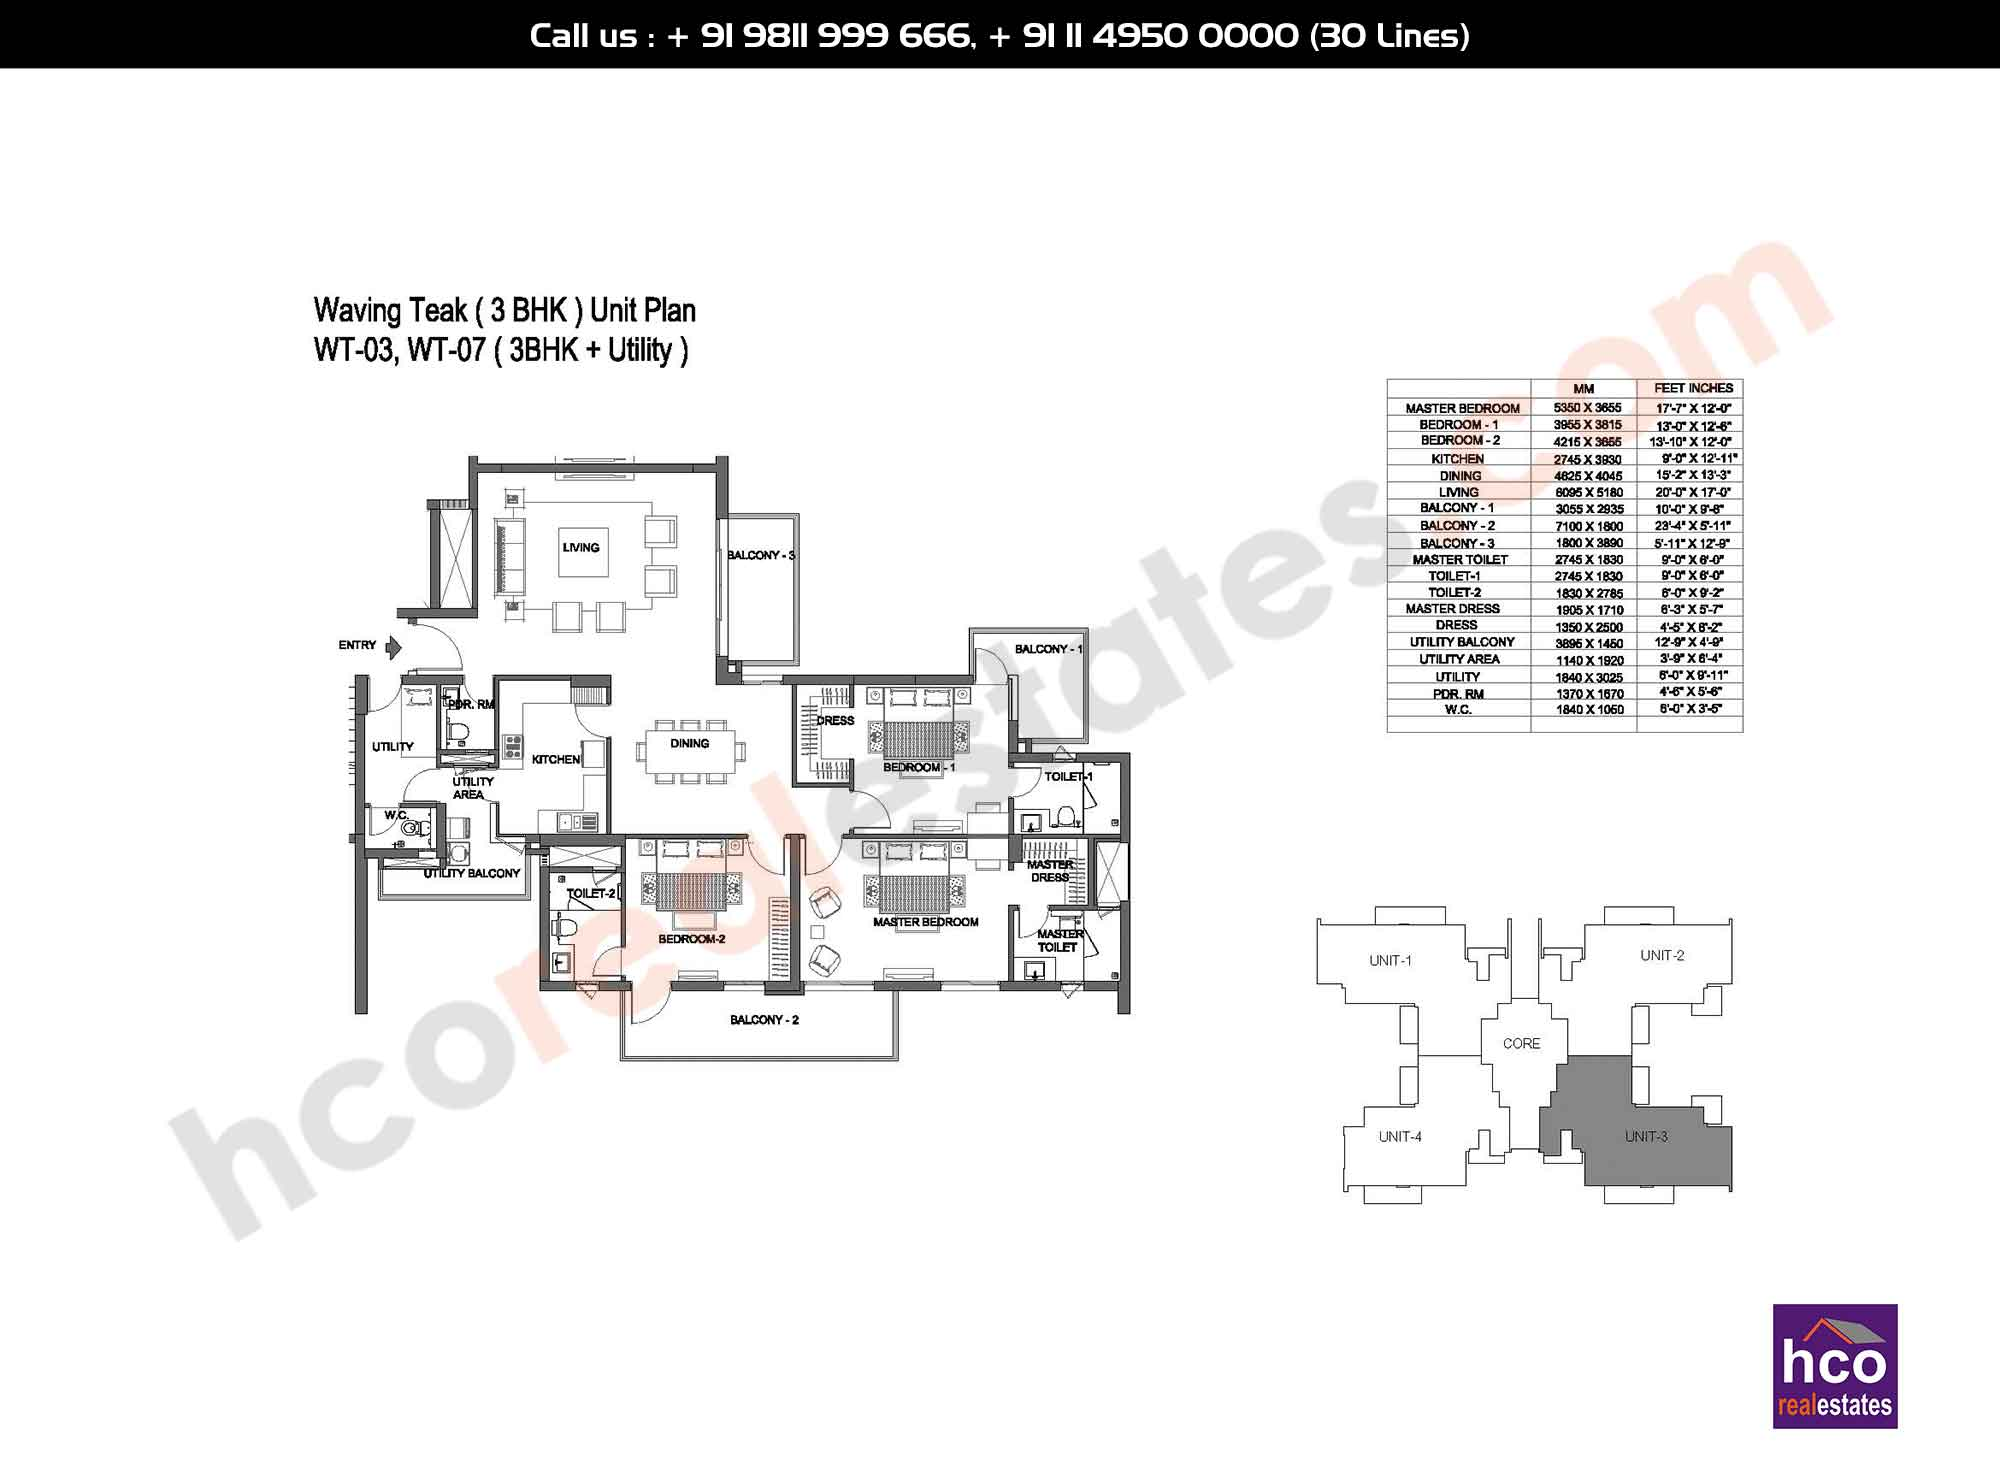 3 BHK - Small + Utility